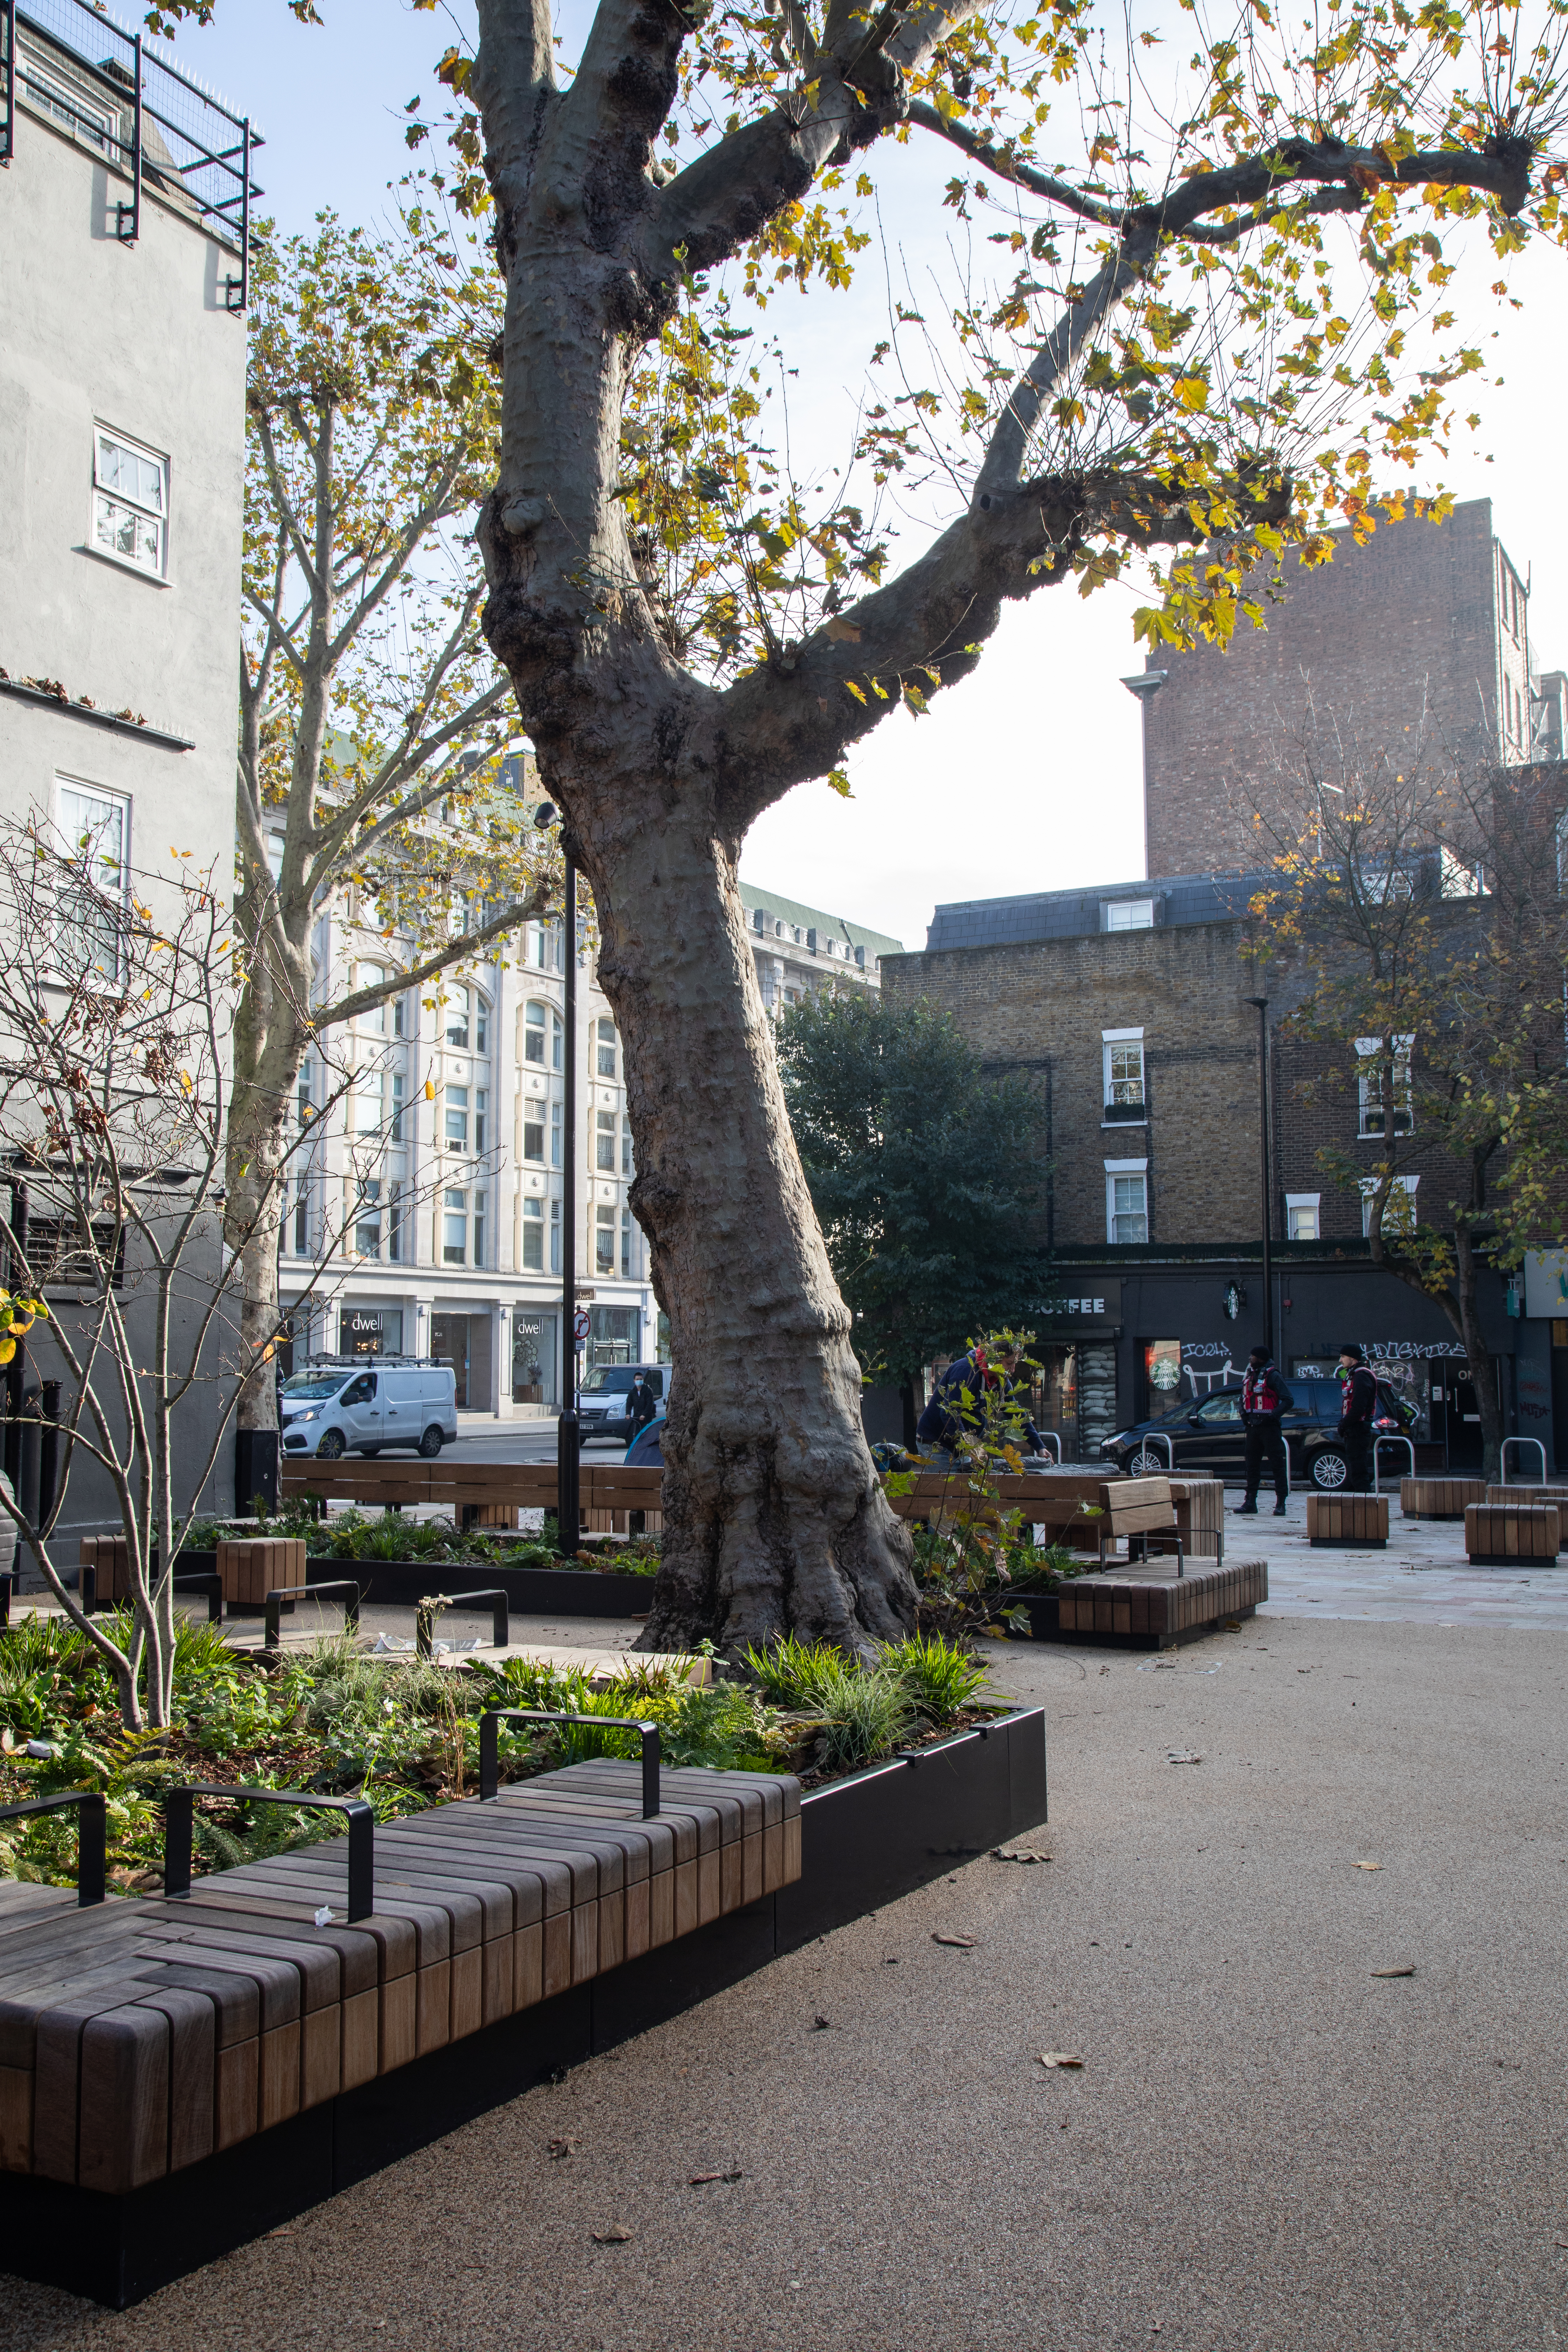 View of Whitfield Gardens after restoration showing new planting